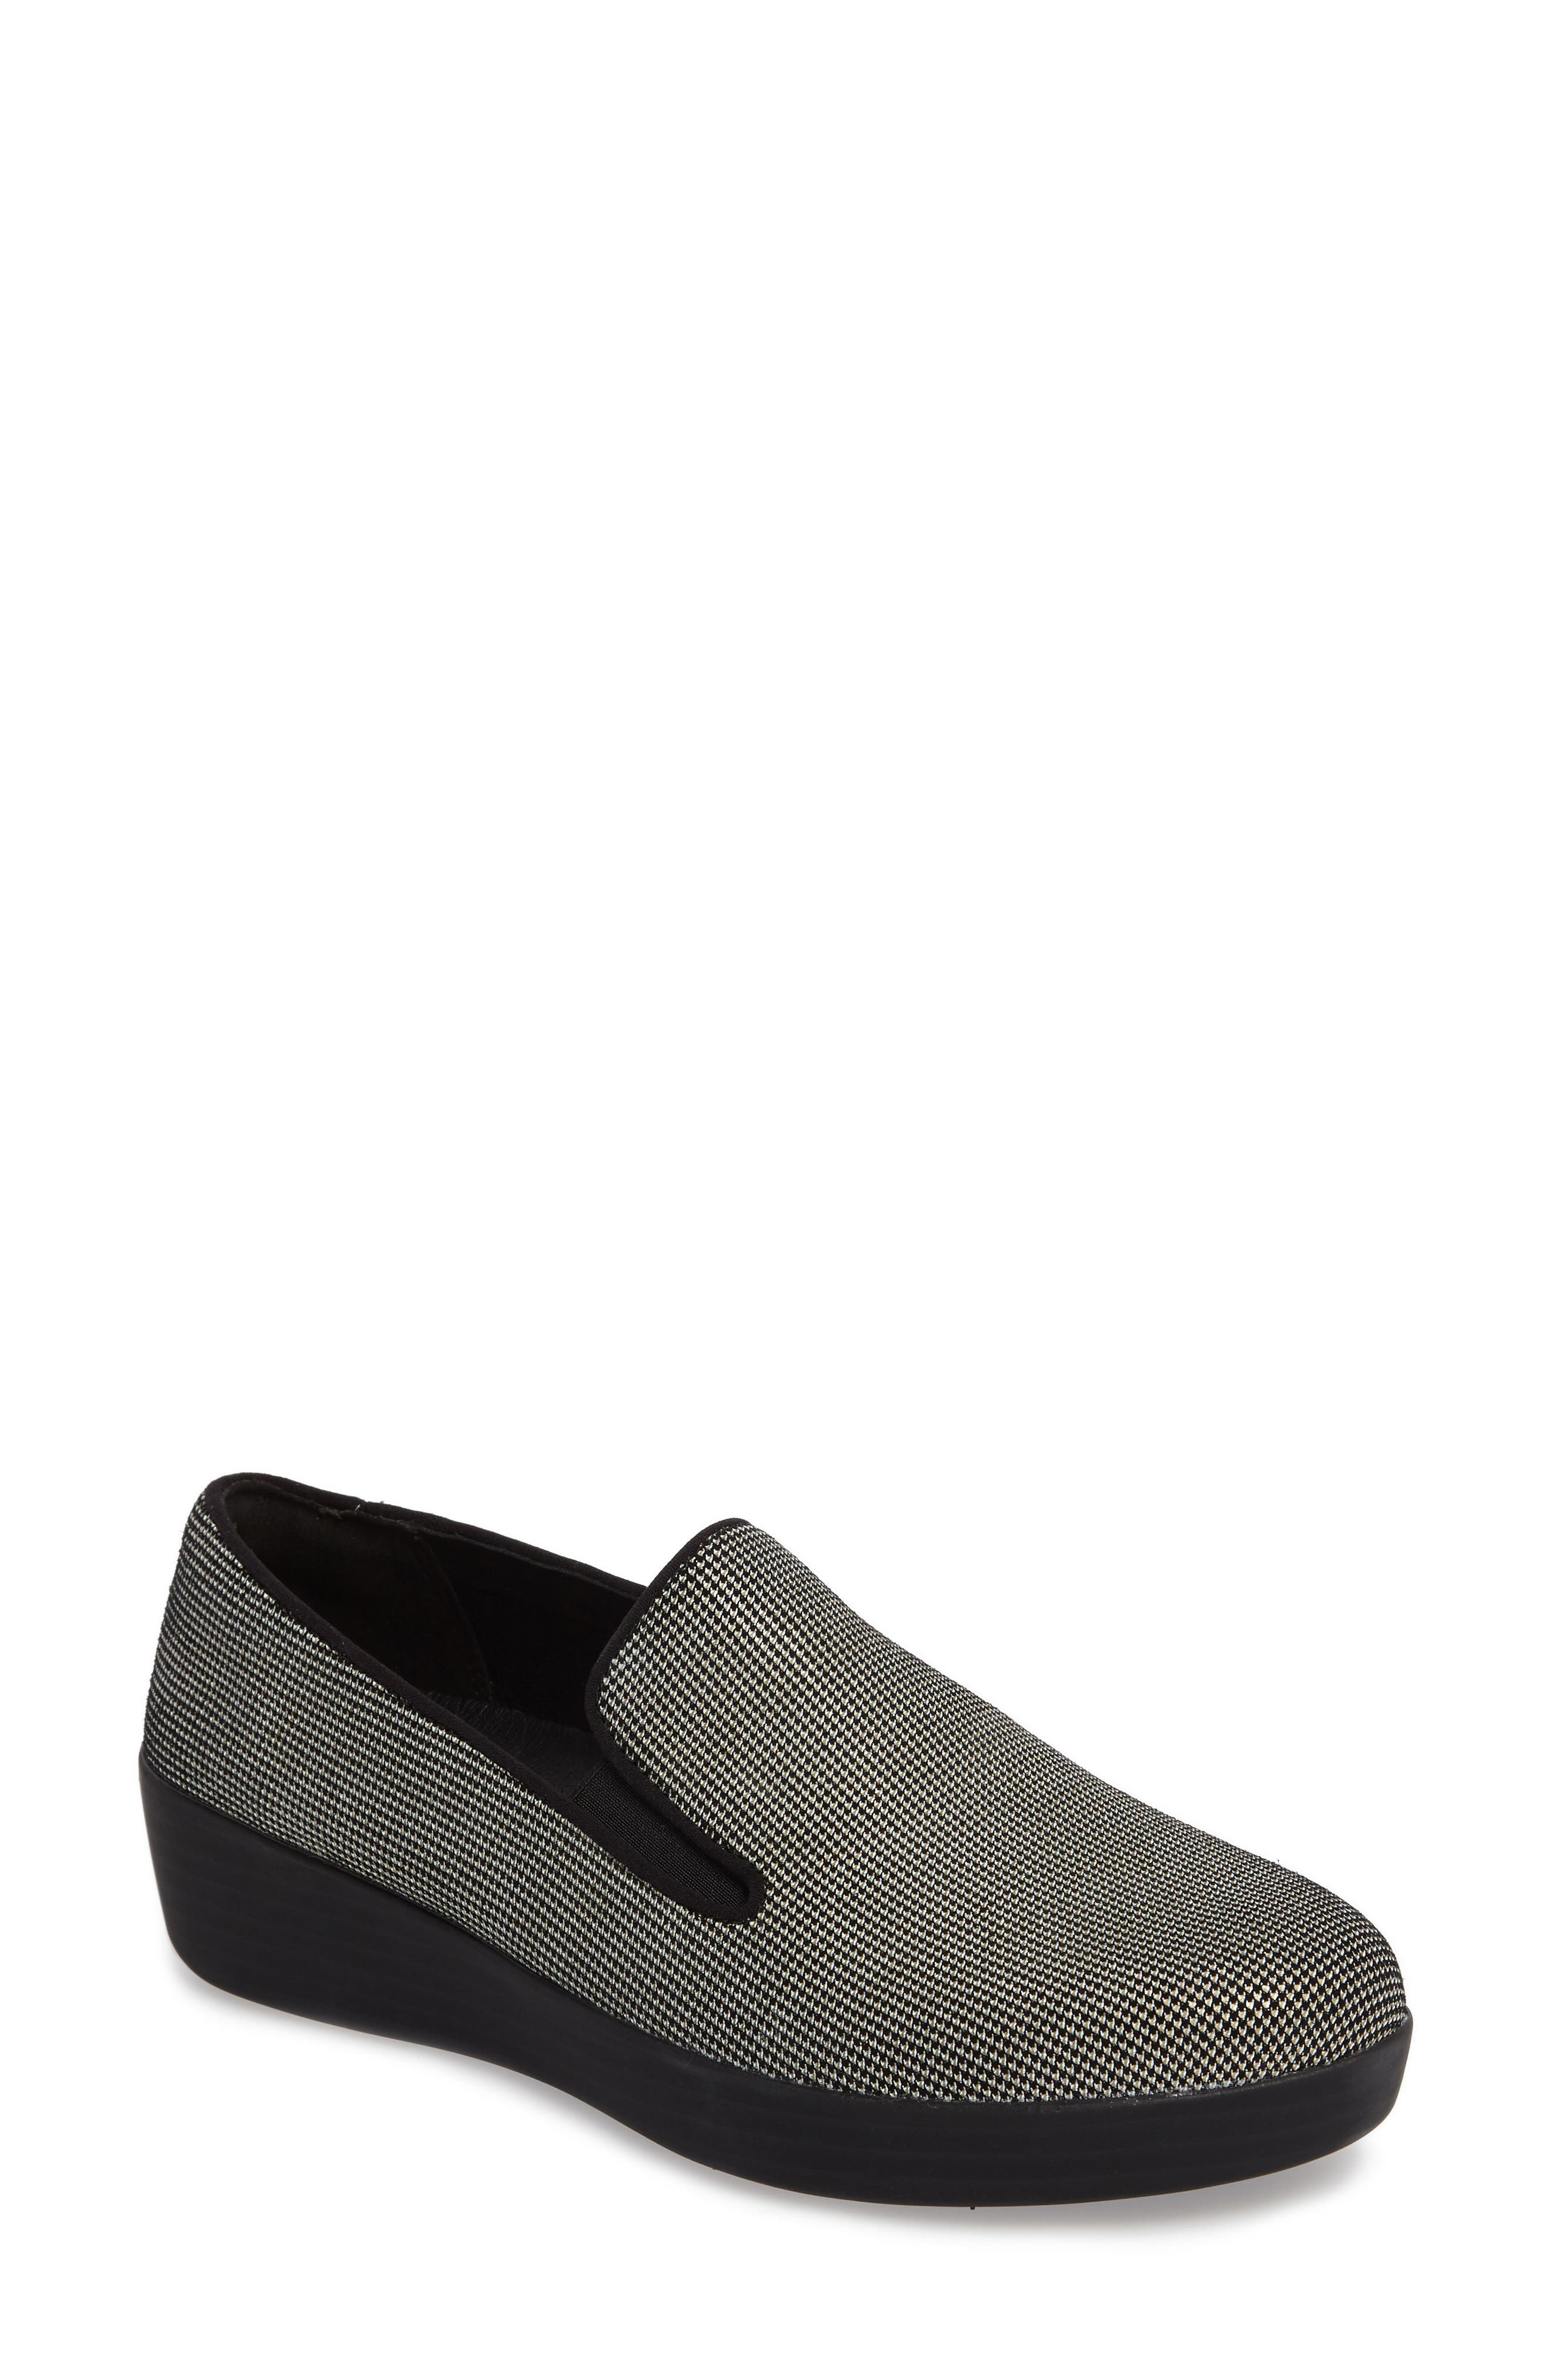 Main Image - FitFlop Houndstooth Superskate Sneaker (Women)